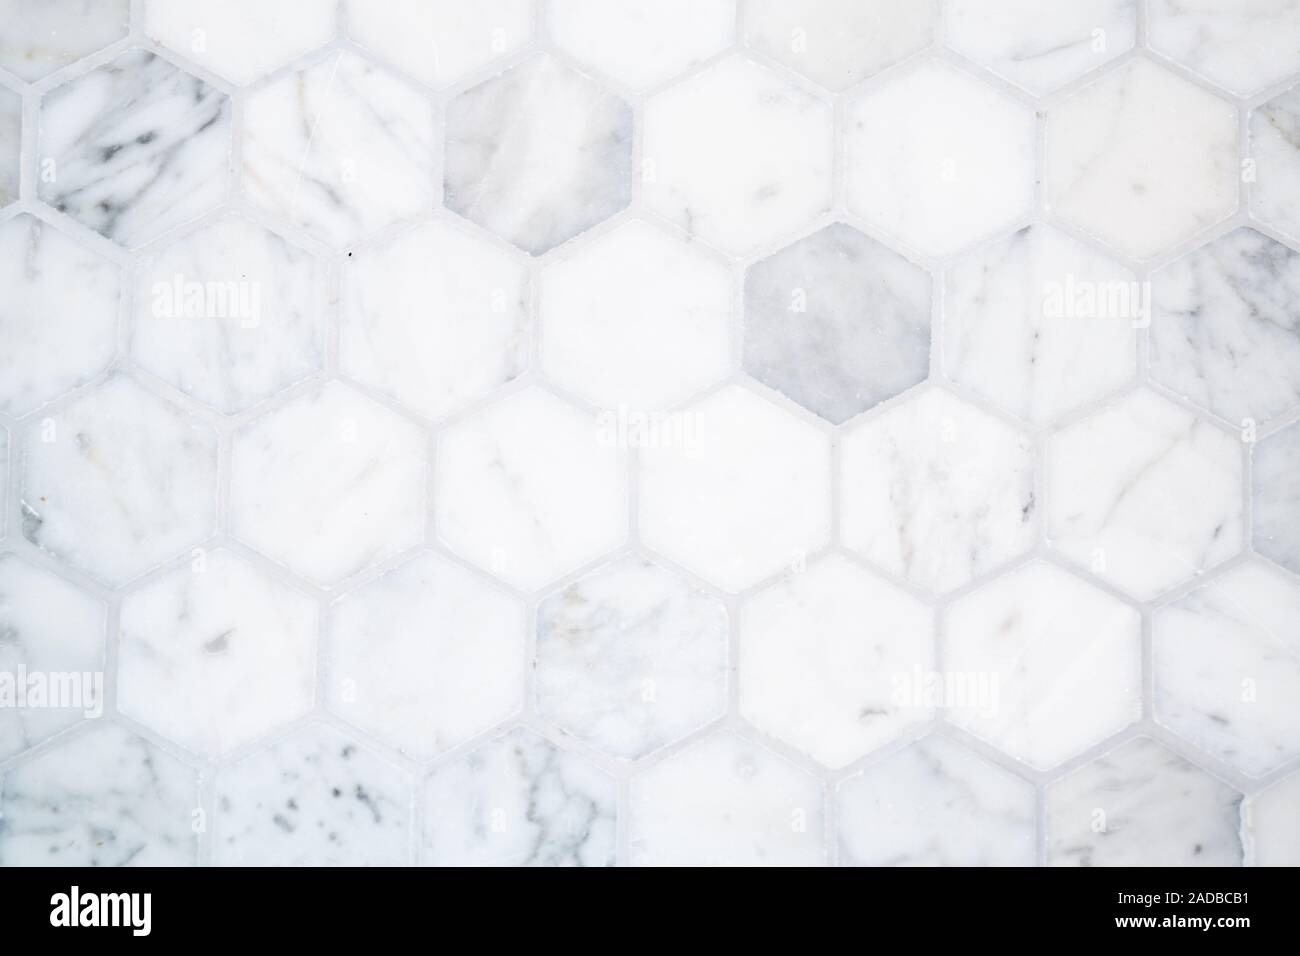 Marble Hexagon Tile Floor Background Pattern With Gray Grout Stock Photo Alamy